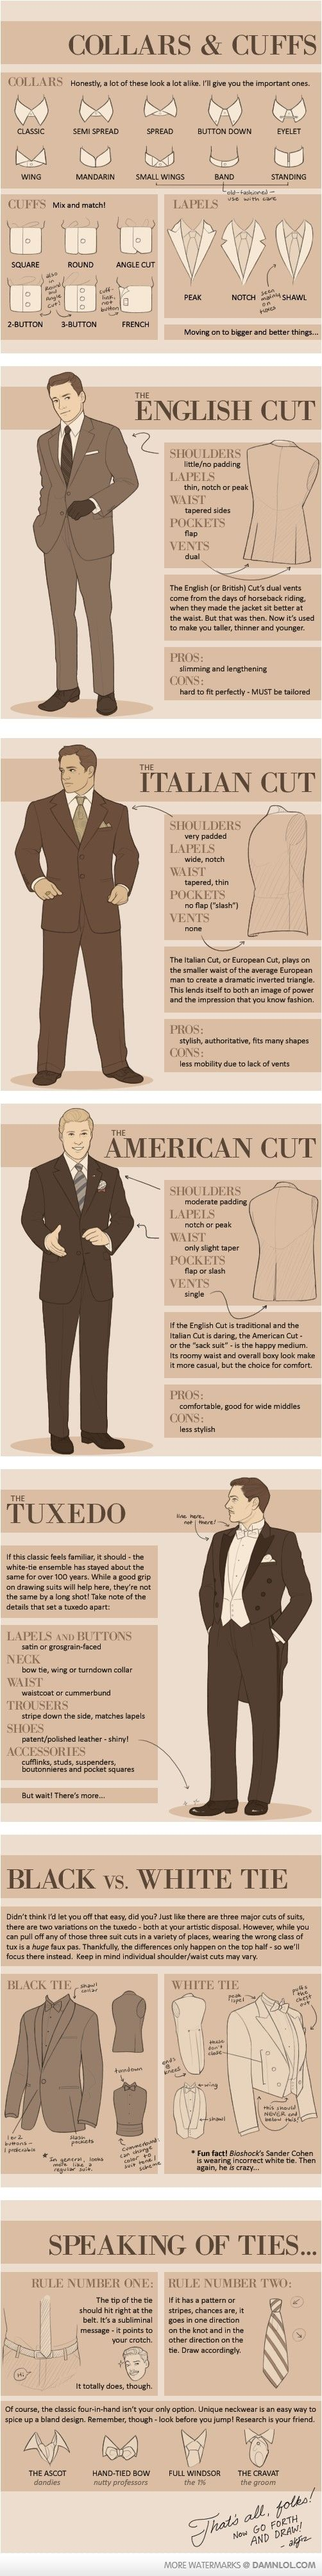 Suit Up! If you have no idea what the difference is between a Square Cuff and a French Cuff, get schooled before you go looking for your wedding attire with this handy infographic!